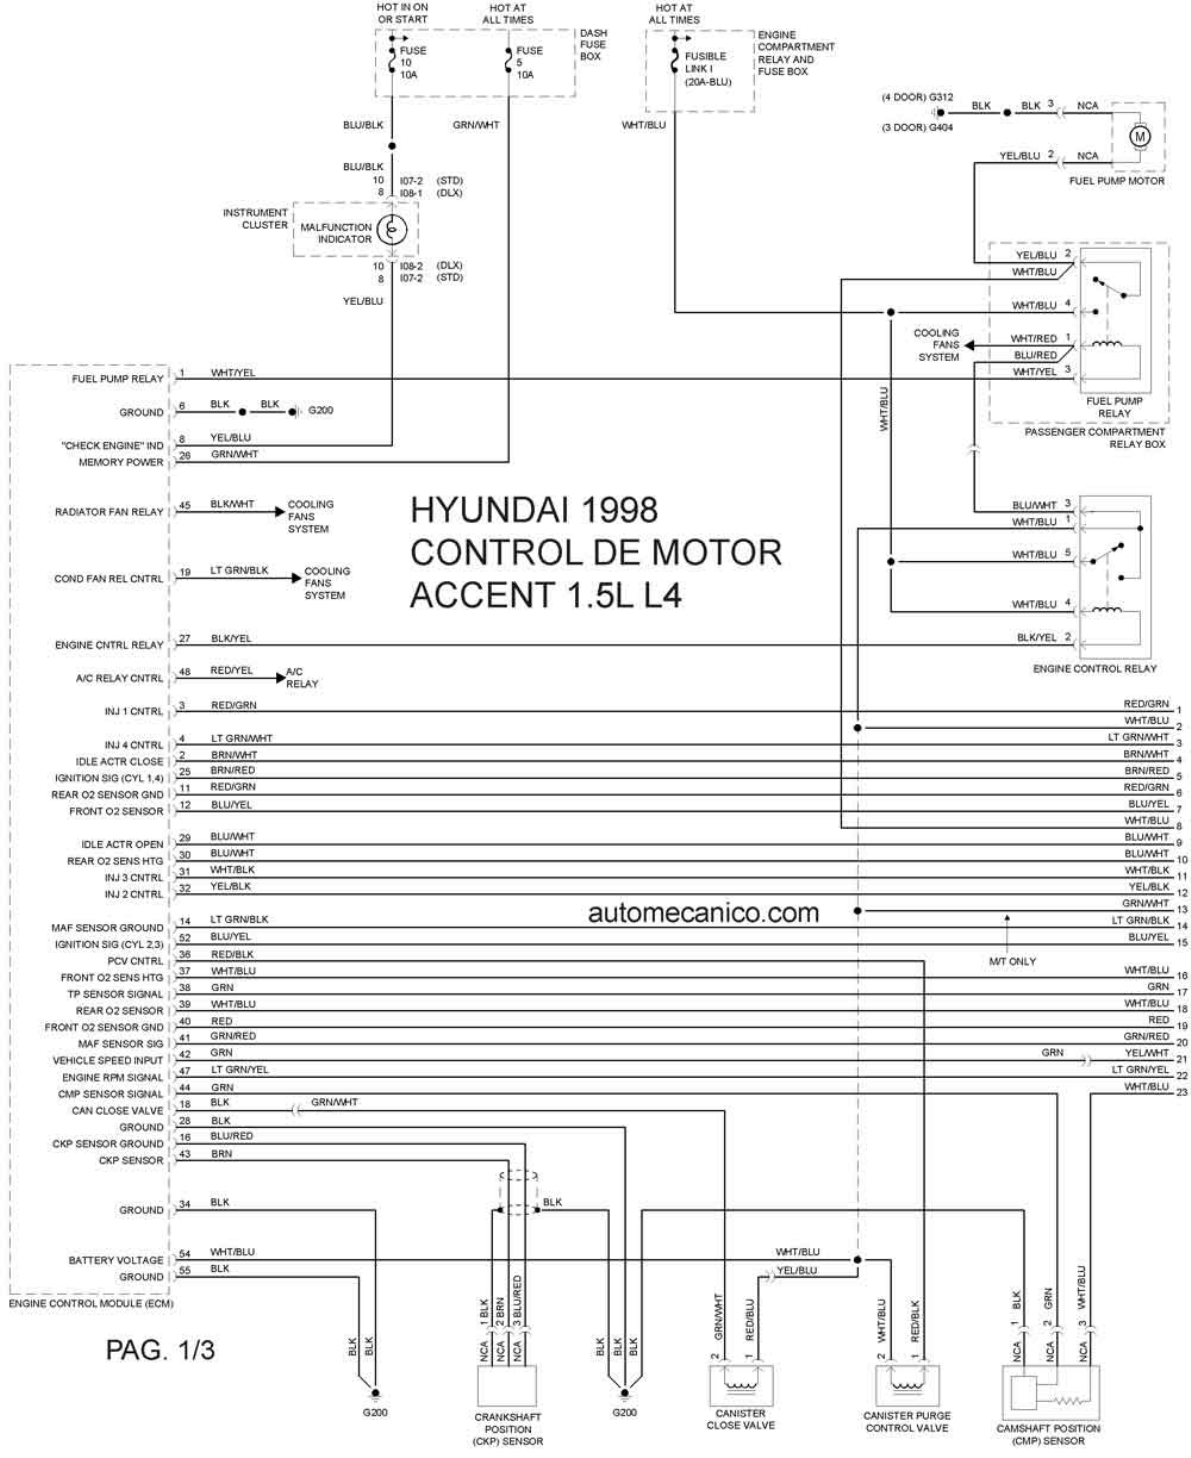 Hyundai Excel X3 Wiring Diagram Reveolution Of 2008 Accent Radio Books U2022 Rh Mattersoflifecoaching Co 2006